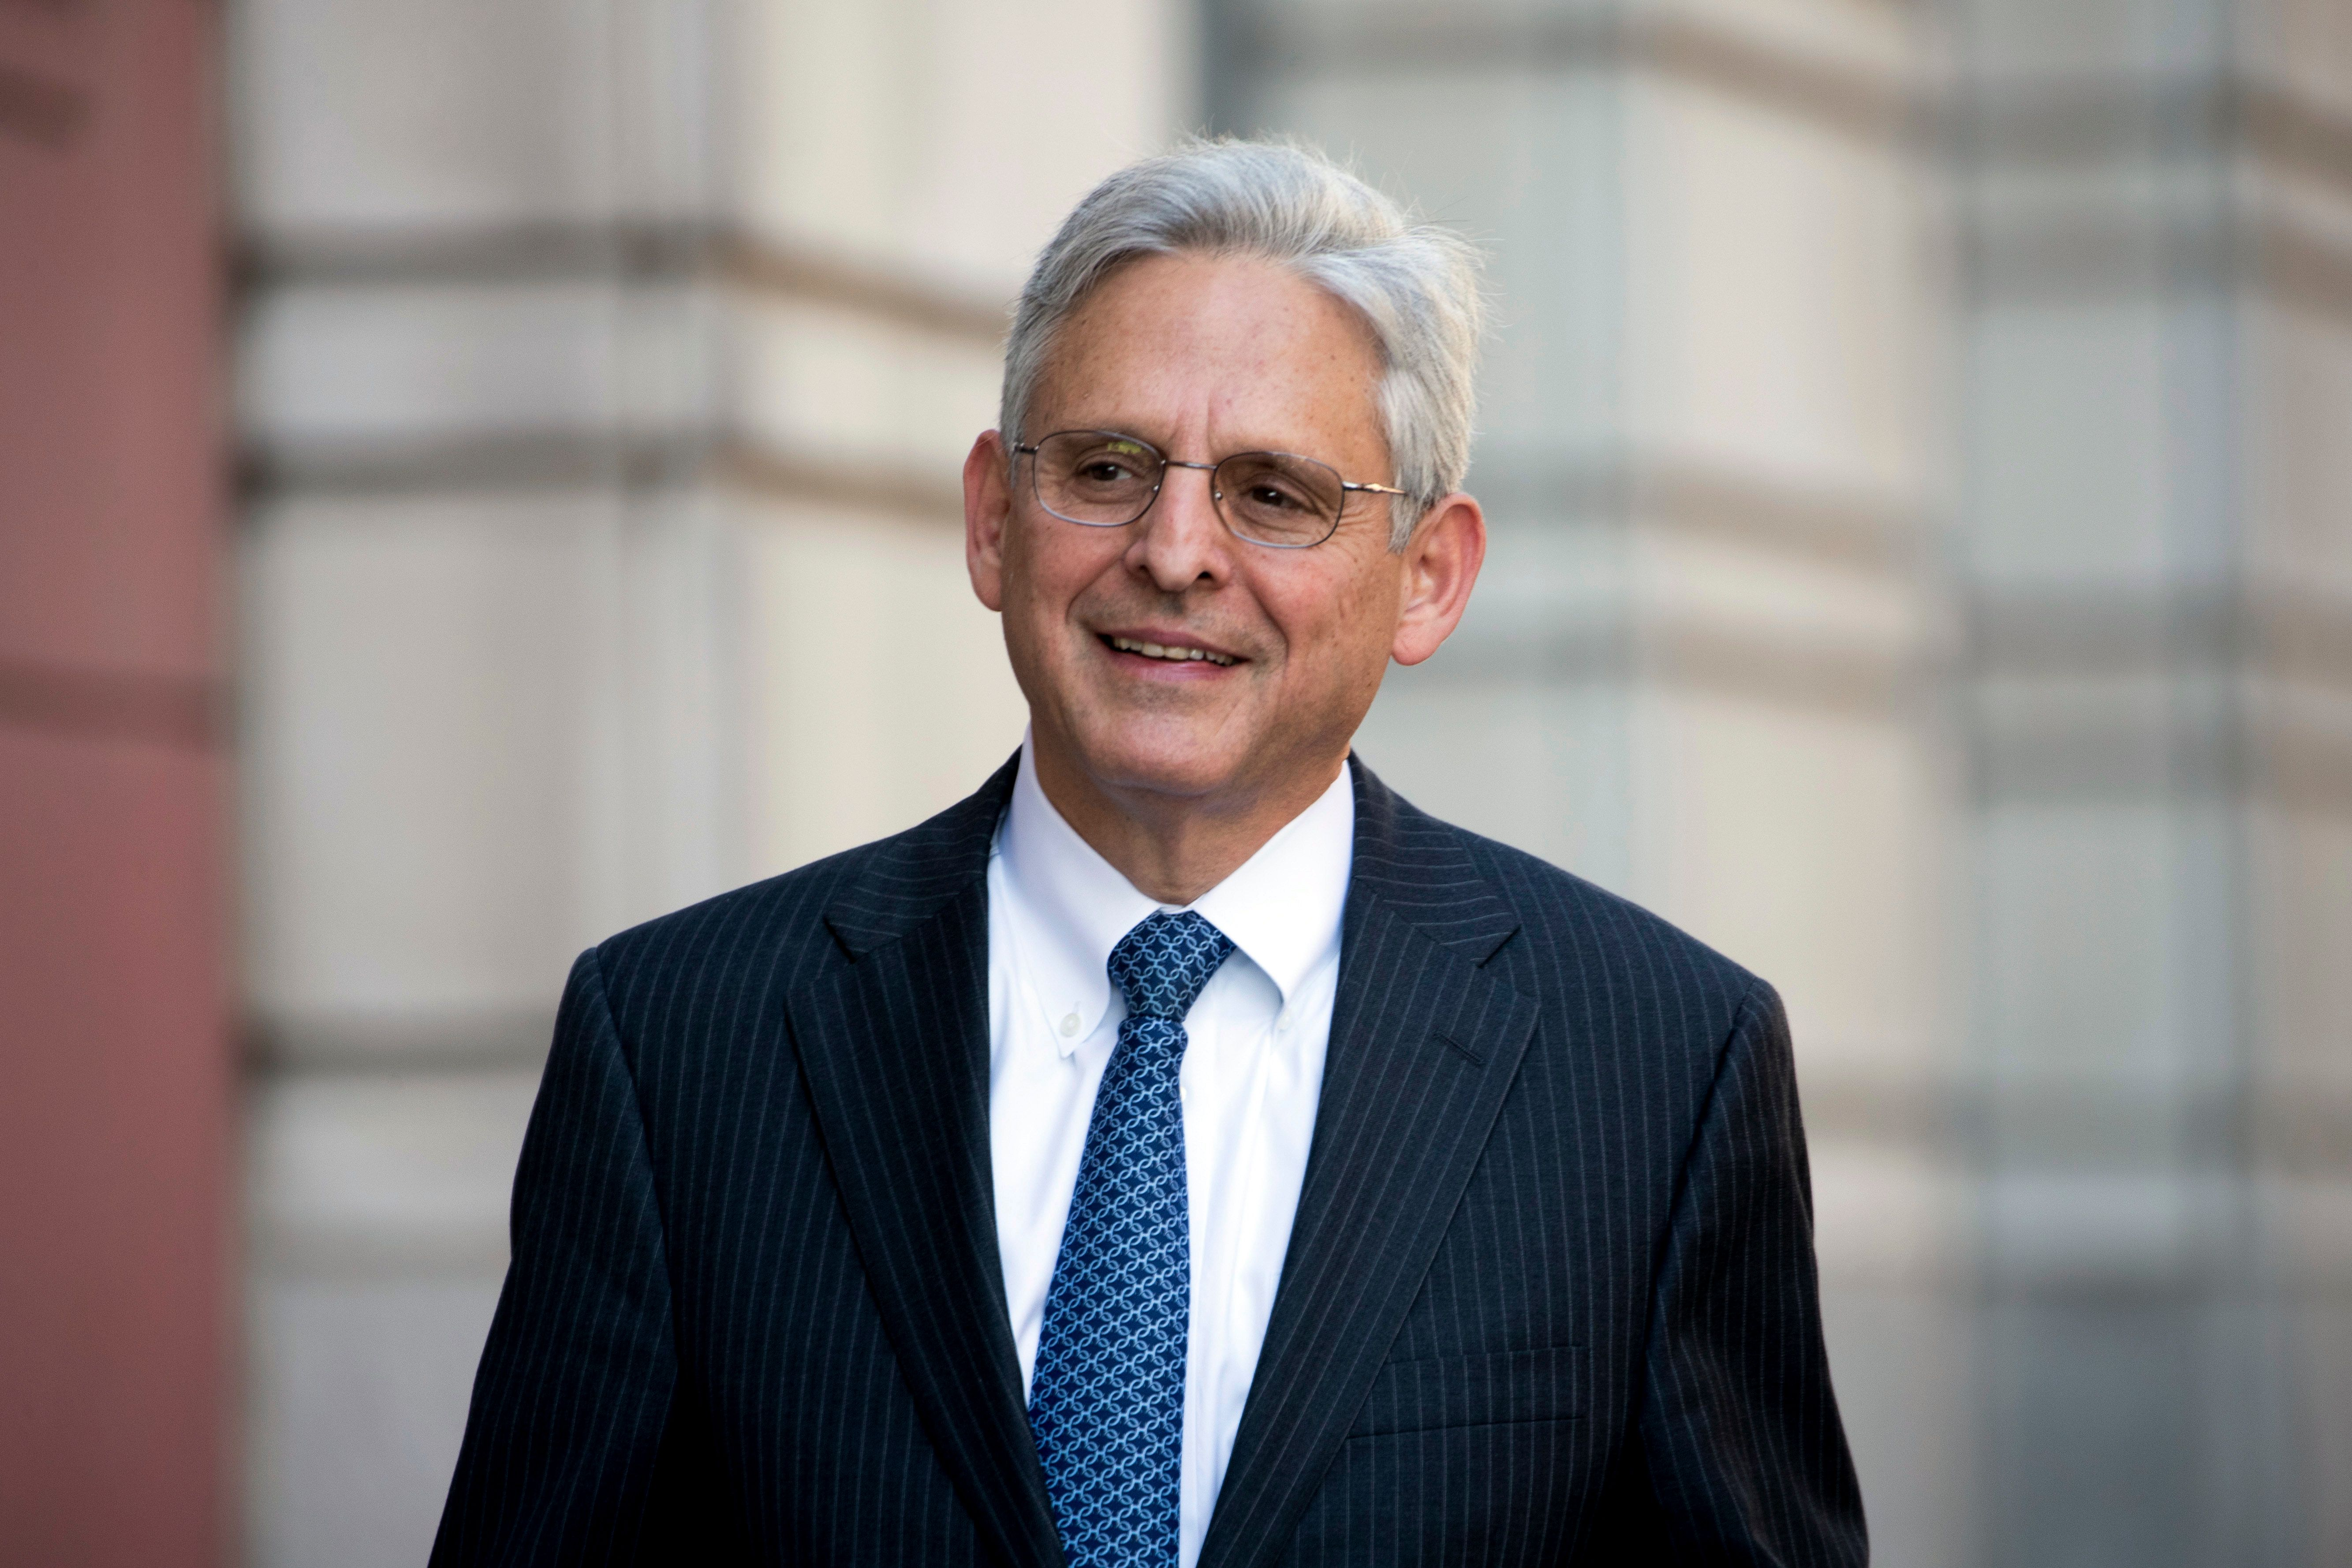 """Merrick Garland, the chief judge of the D.C. Circuit, said the new policies were crafted to """"fix the problem"""" of workplace ha"""